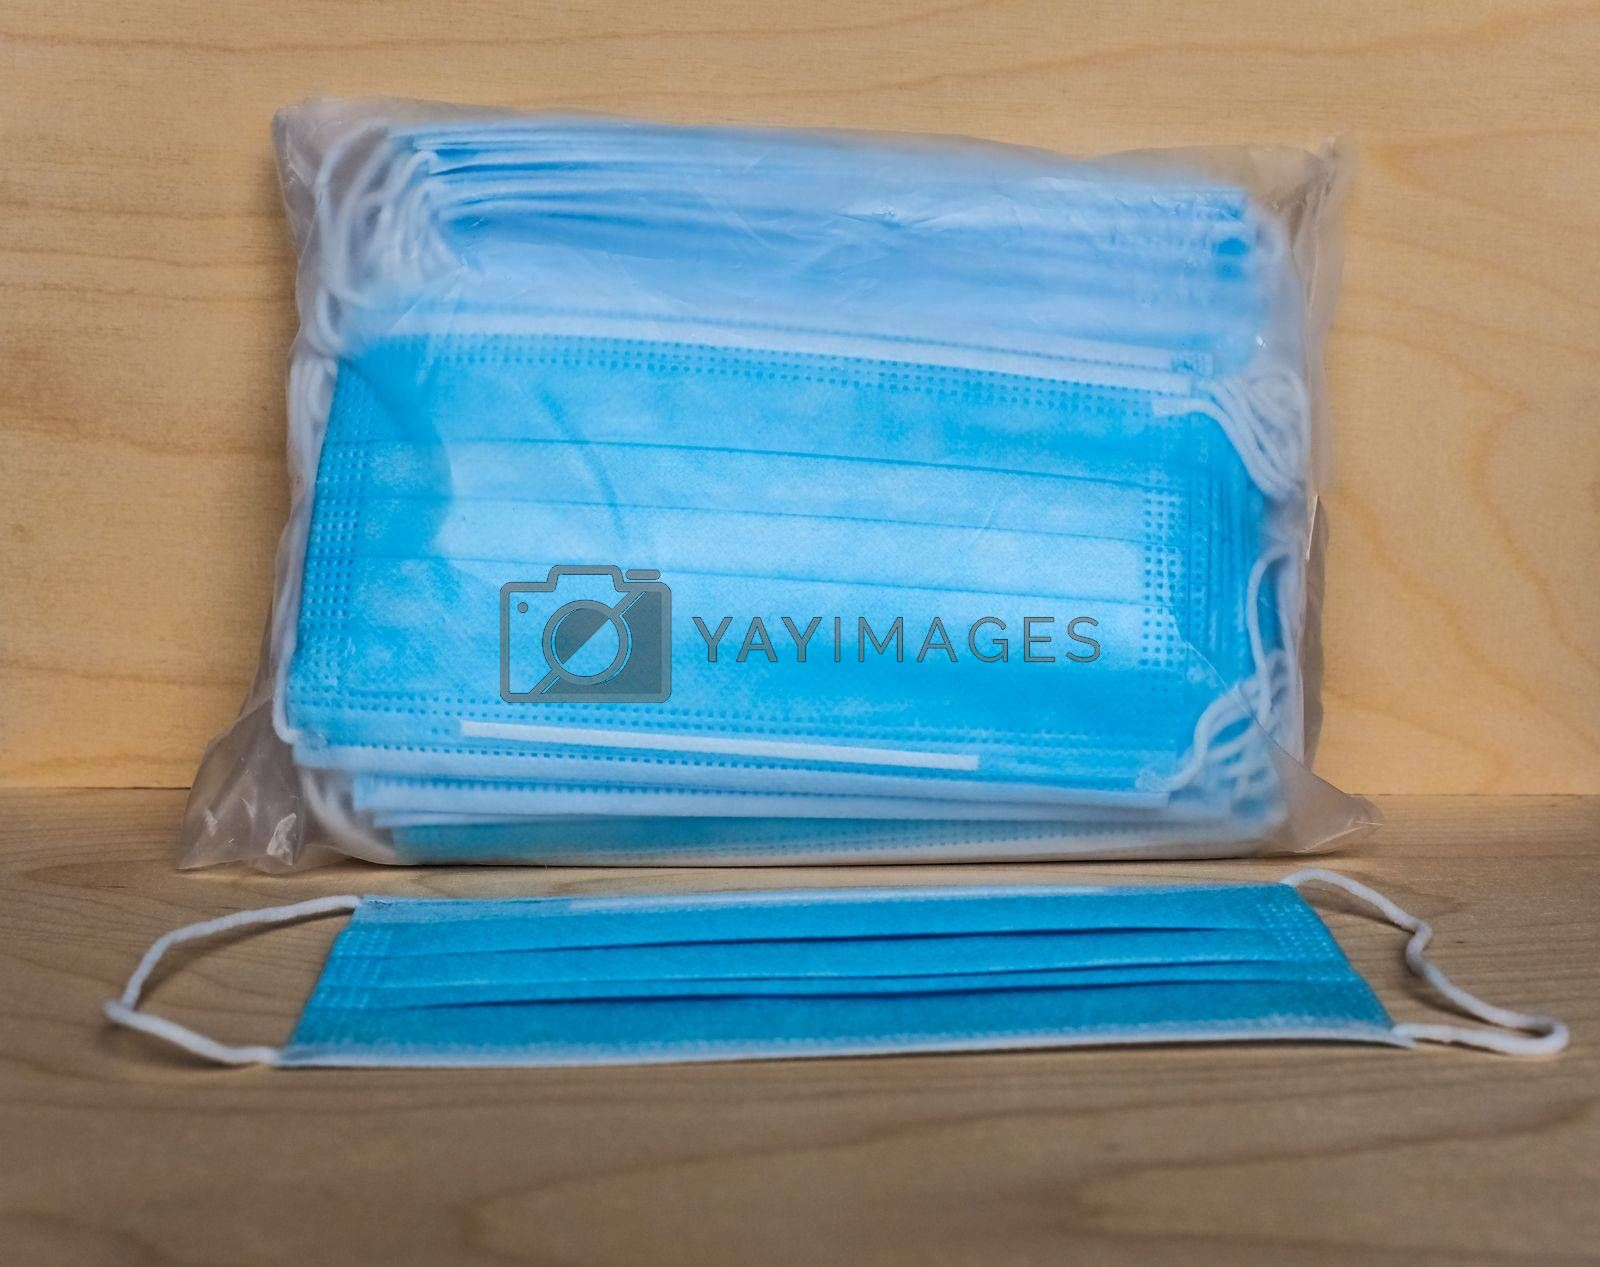 face masks used to protect from respiratory illnesses including COVID-19